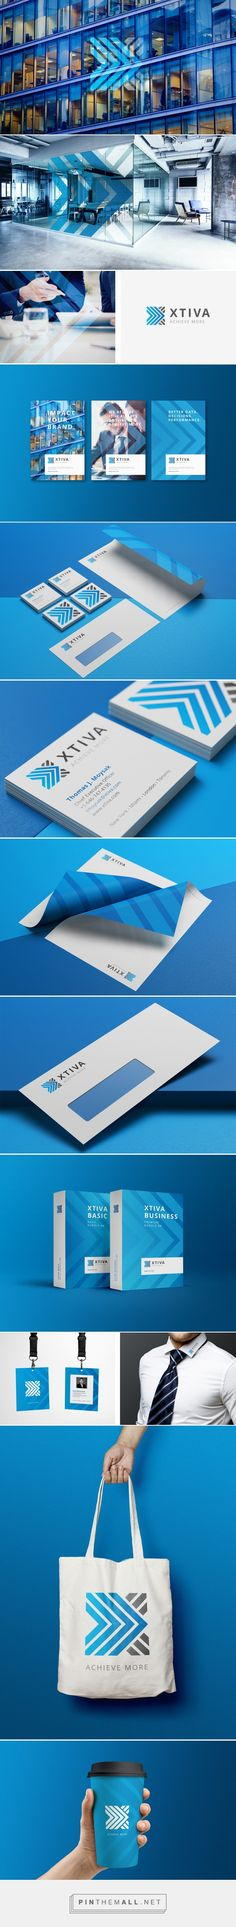 xtiva — corporate design by simon spring